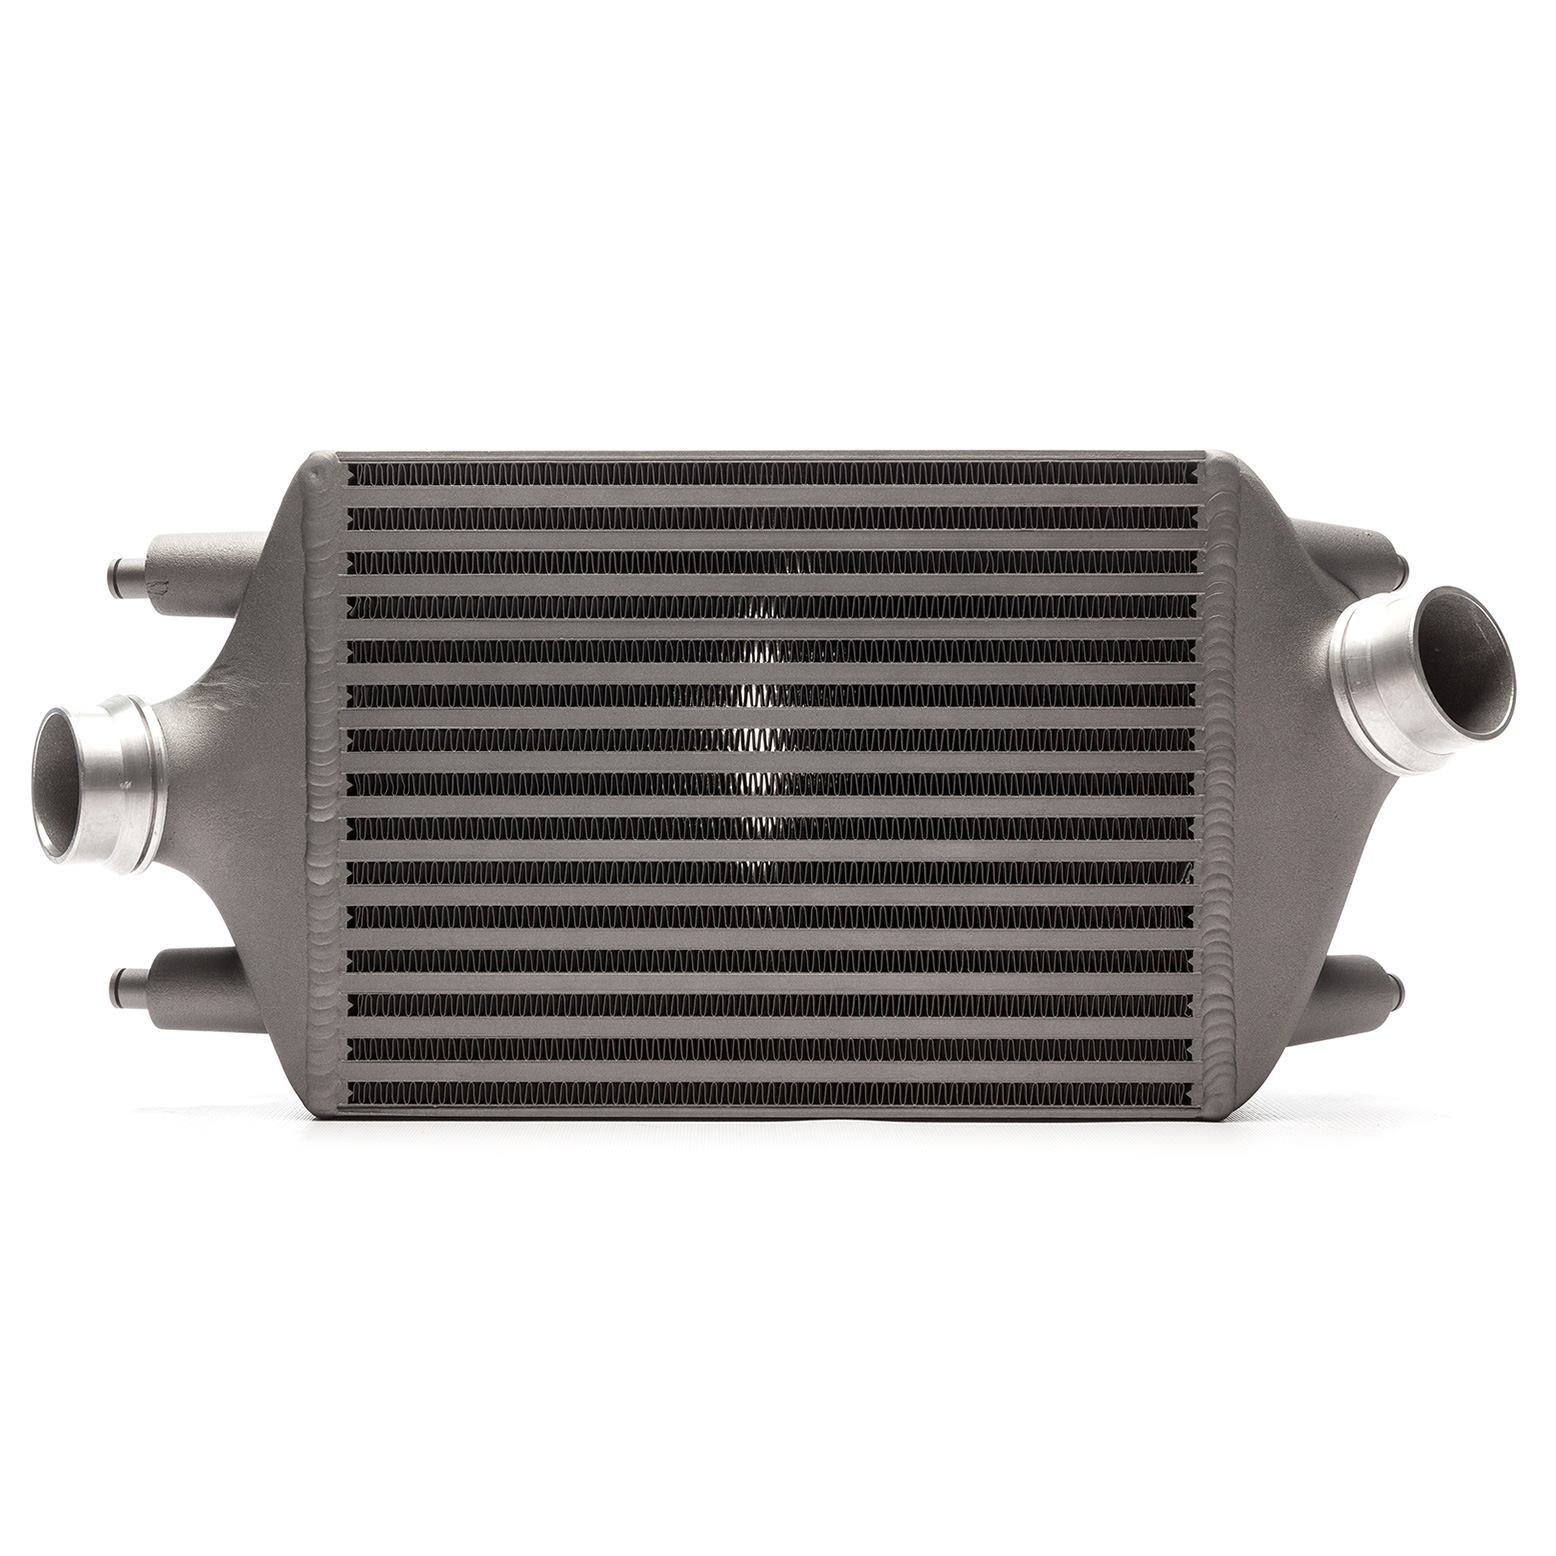 Porsche 911 Turbo / Turbo S (991.1 / 991.2 series) Twin Intercooler set